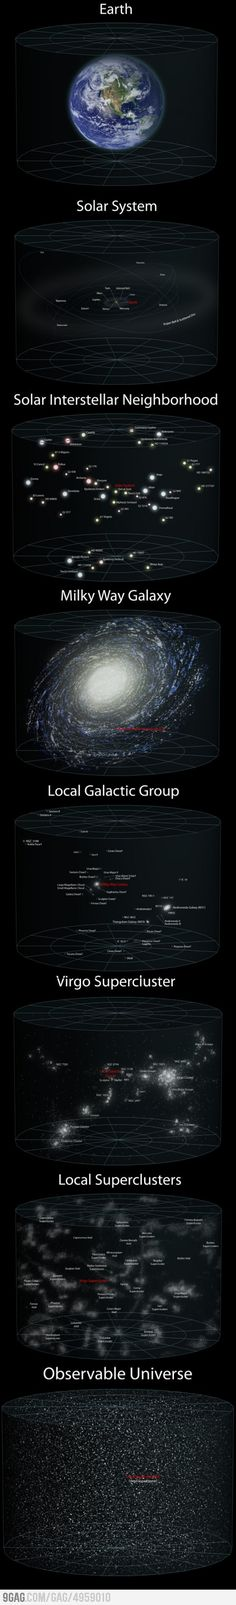 Earth, Solar System, Galactic Magnificent